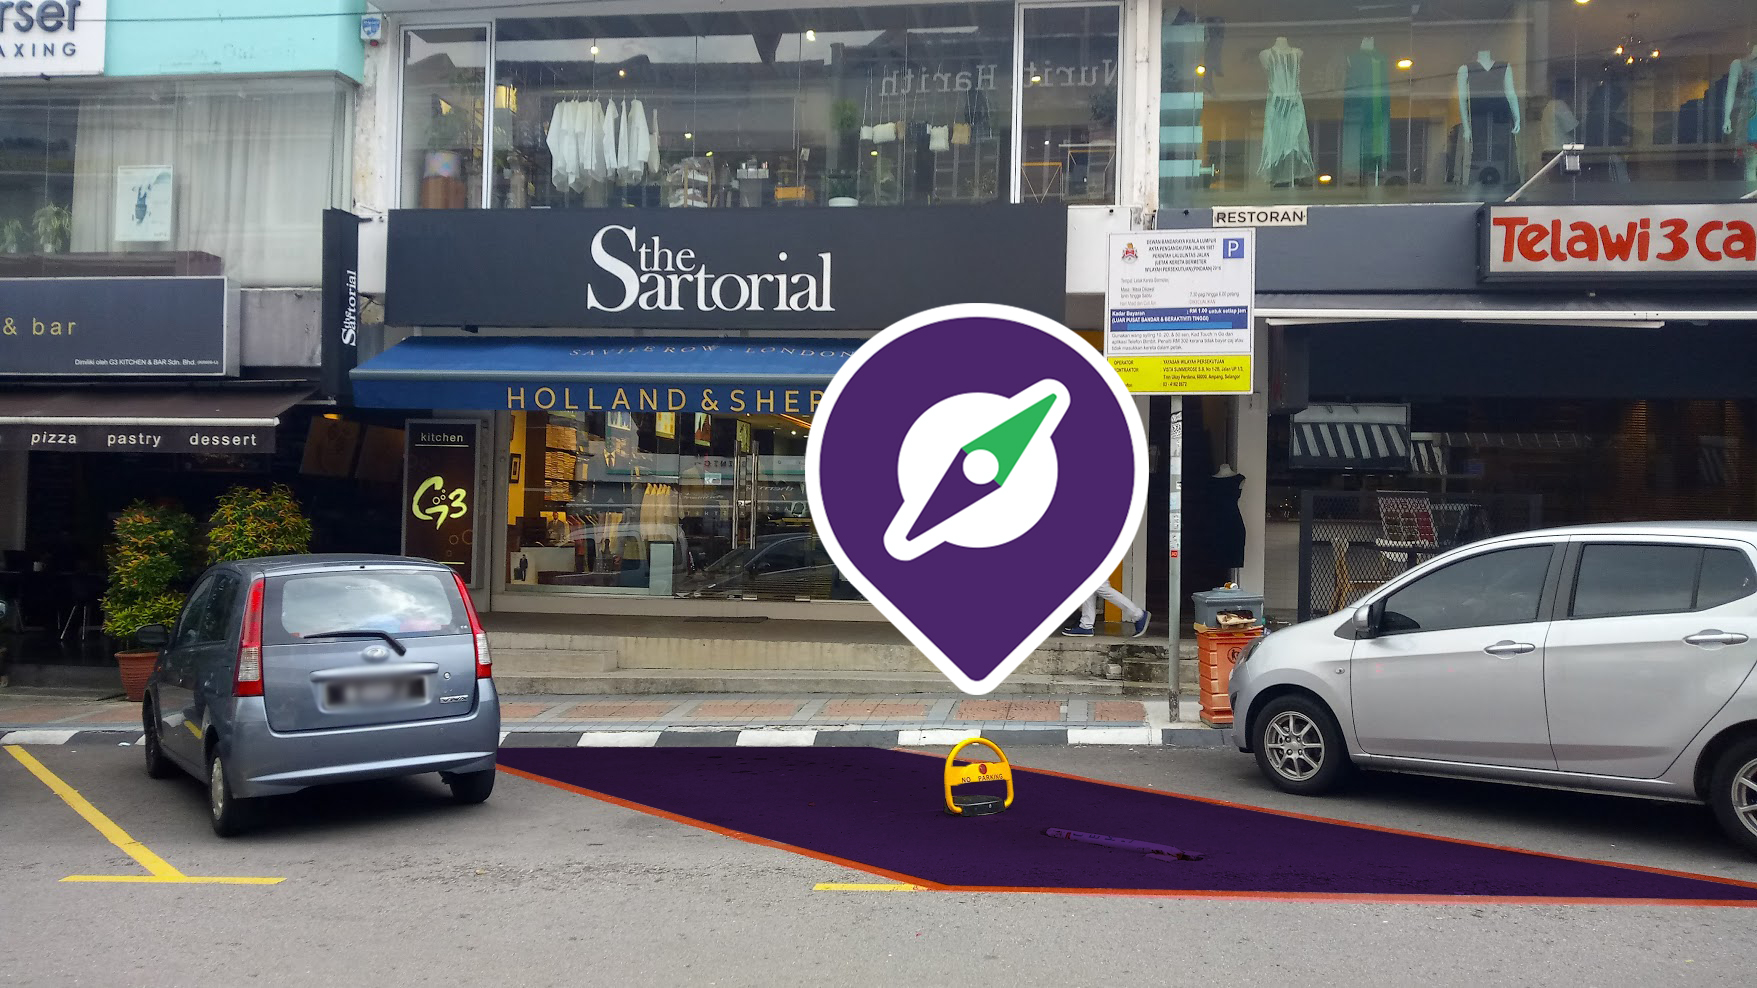 Outside view of the new parking space (please note that the floor is not actually painted purple)